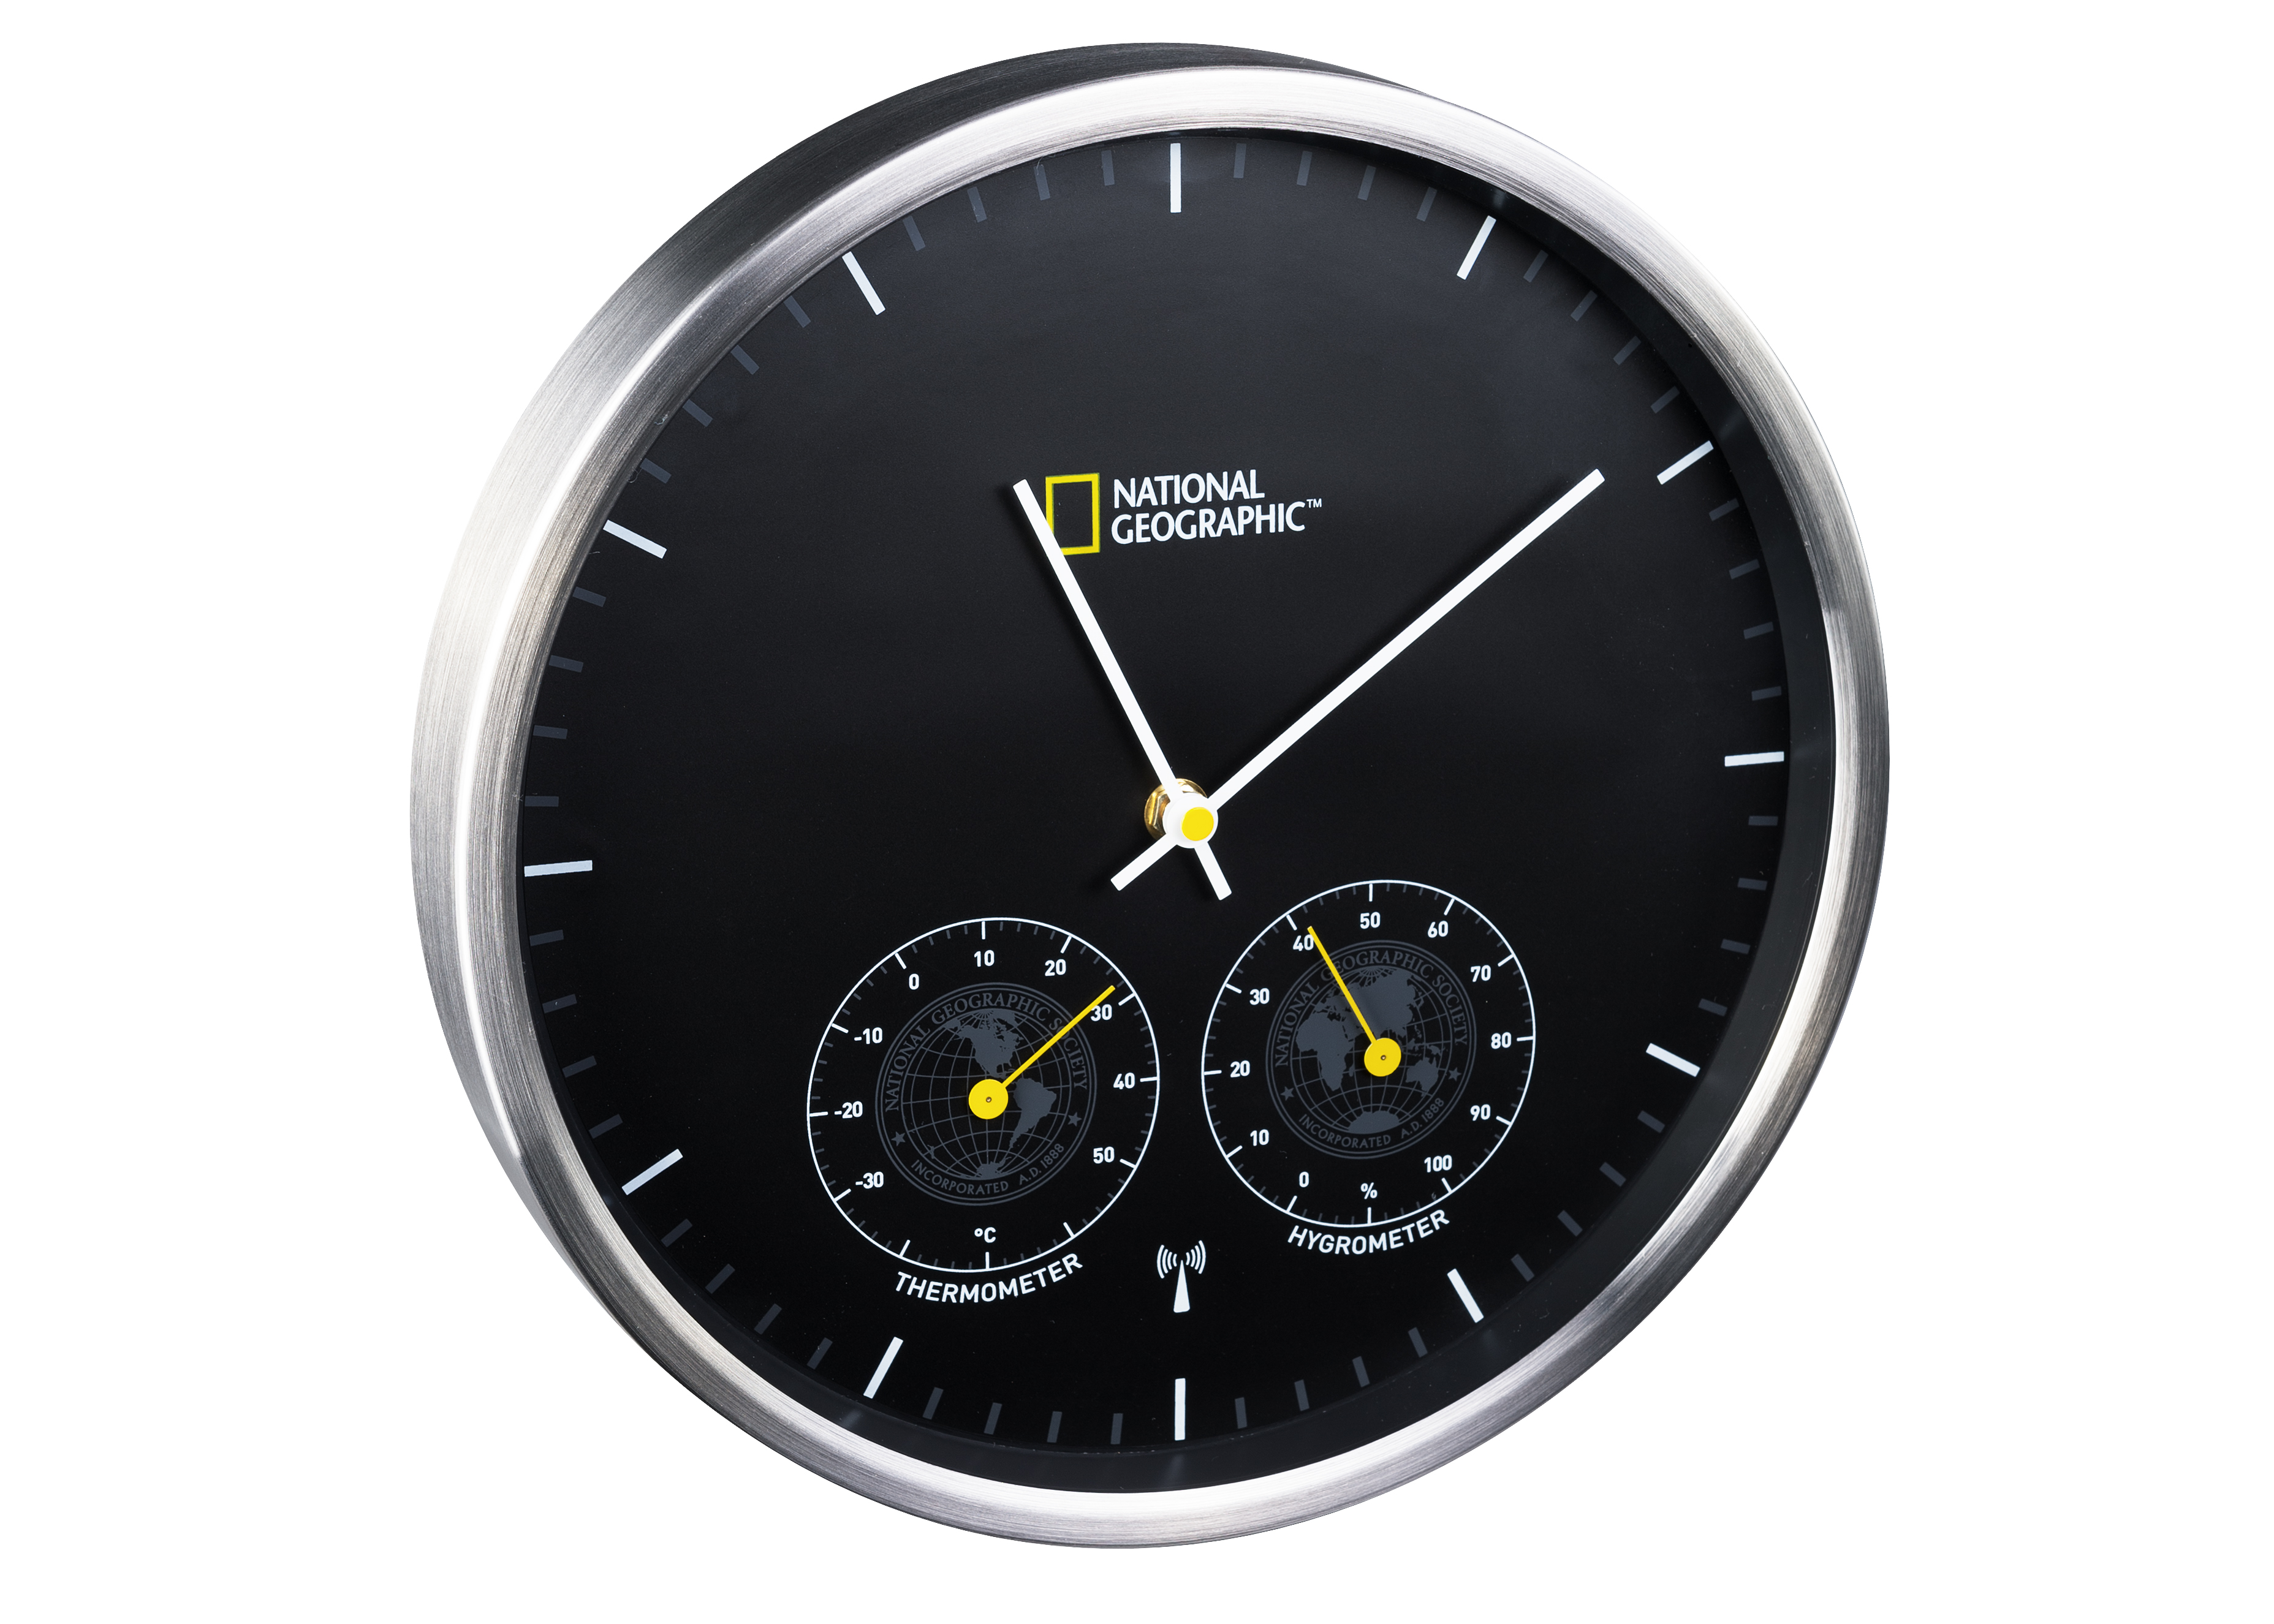 national geographic wanduhr mit thermometer hygrometer bresser. Black Bedroom Furniture Sets. Home Design Ideas